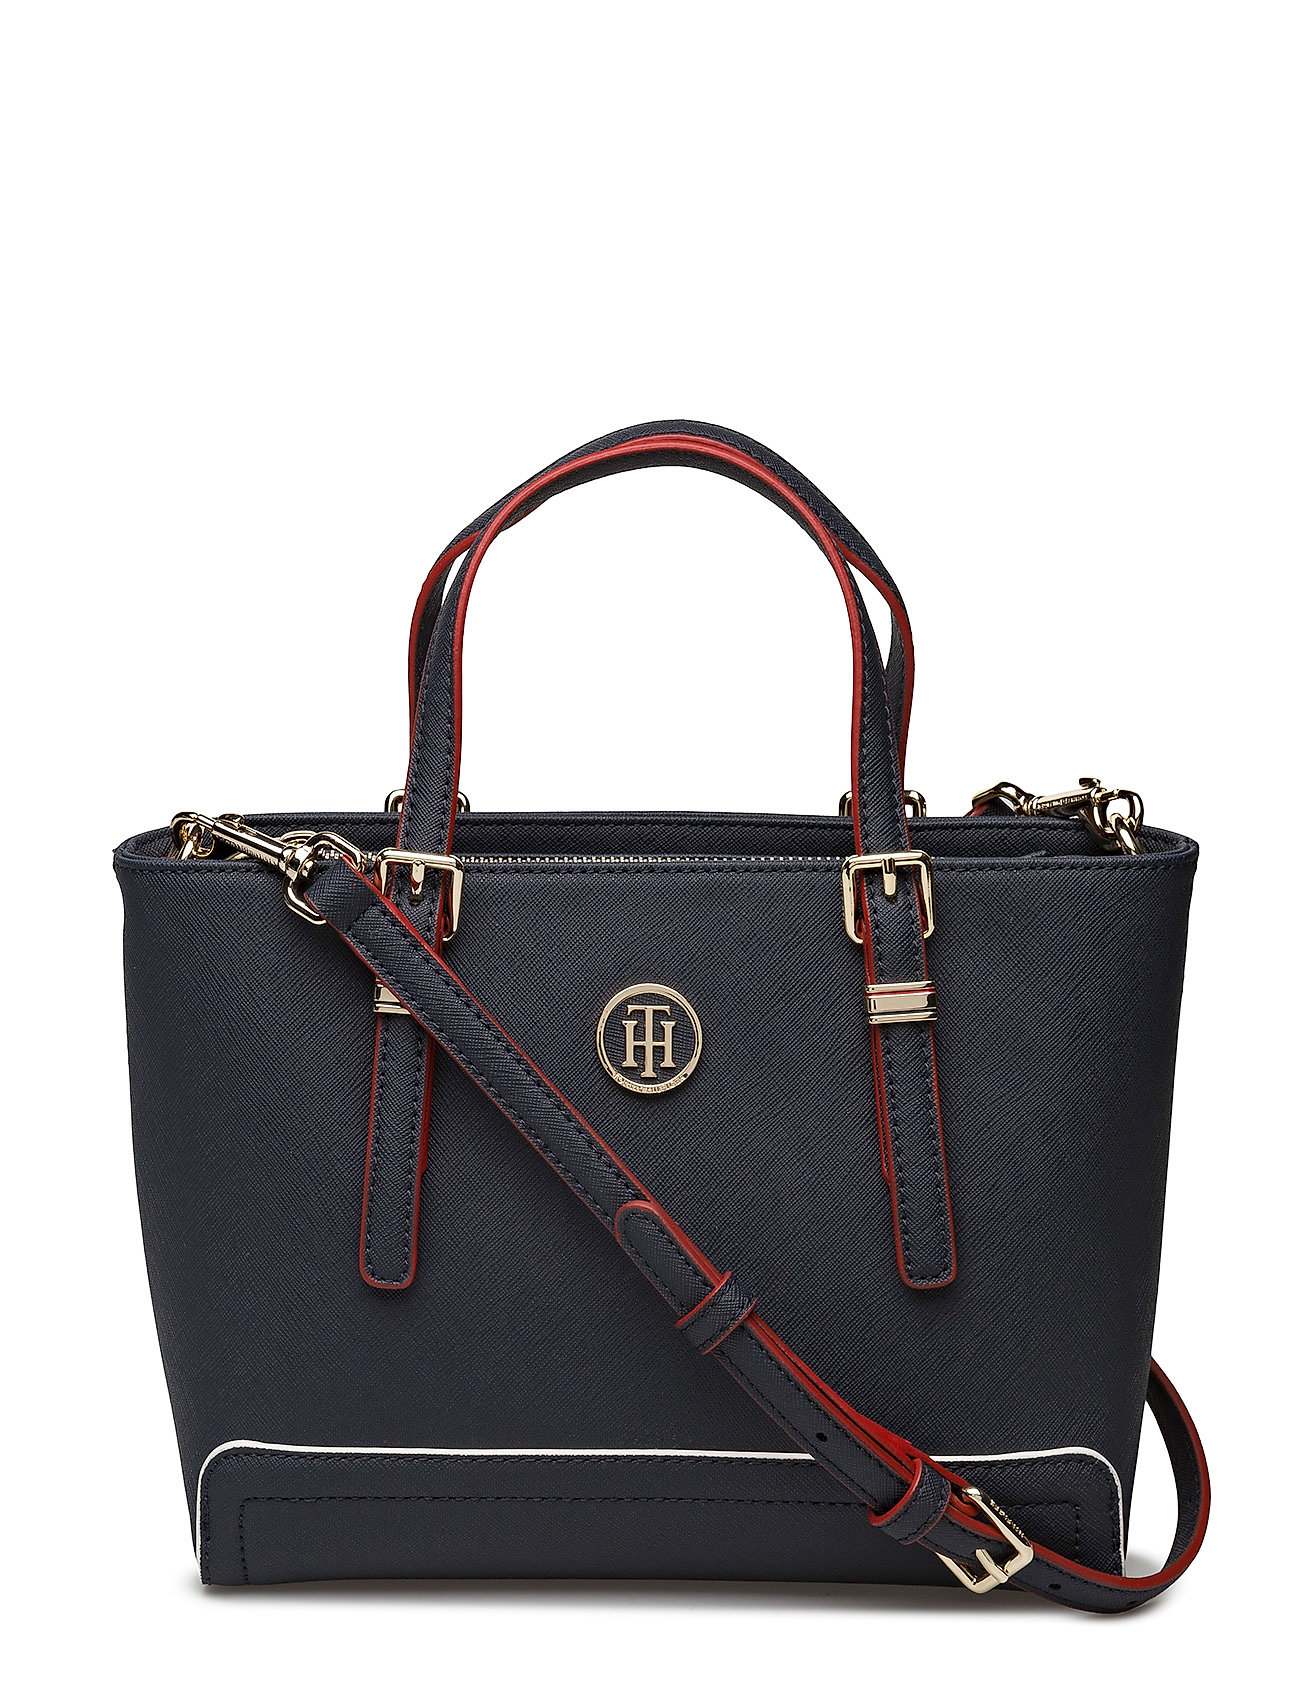 Tommy Hilfiger Laukut Miehet : Honey small tote tommy navy edge paint